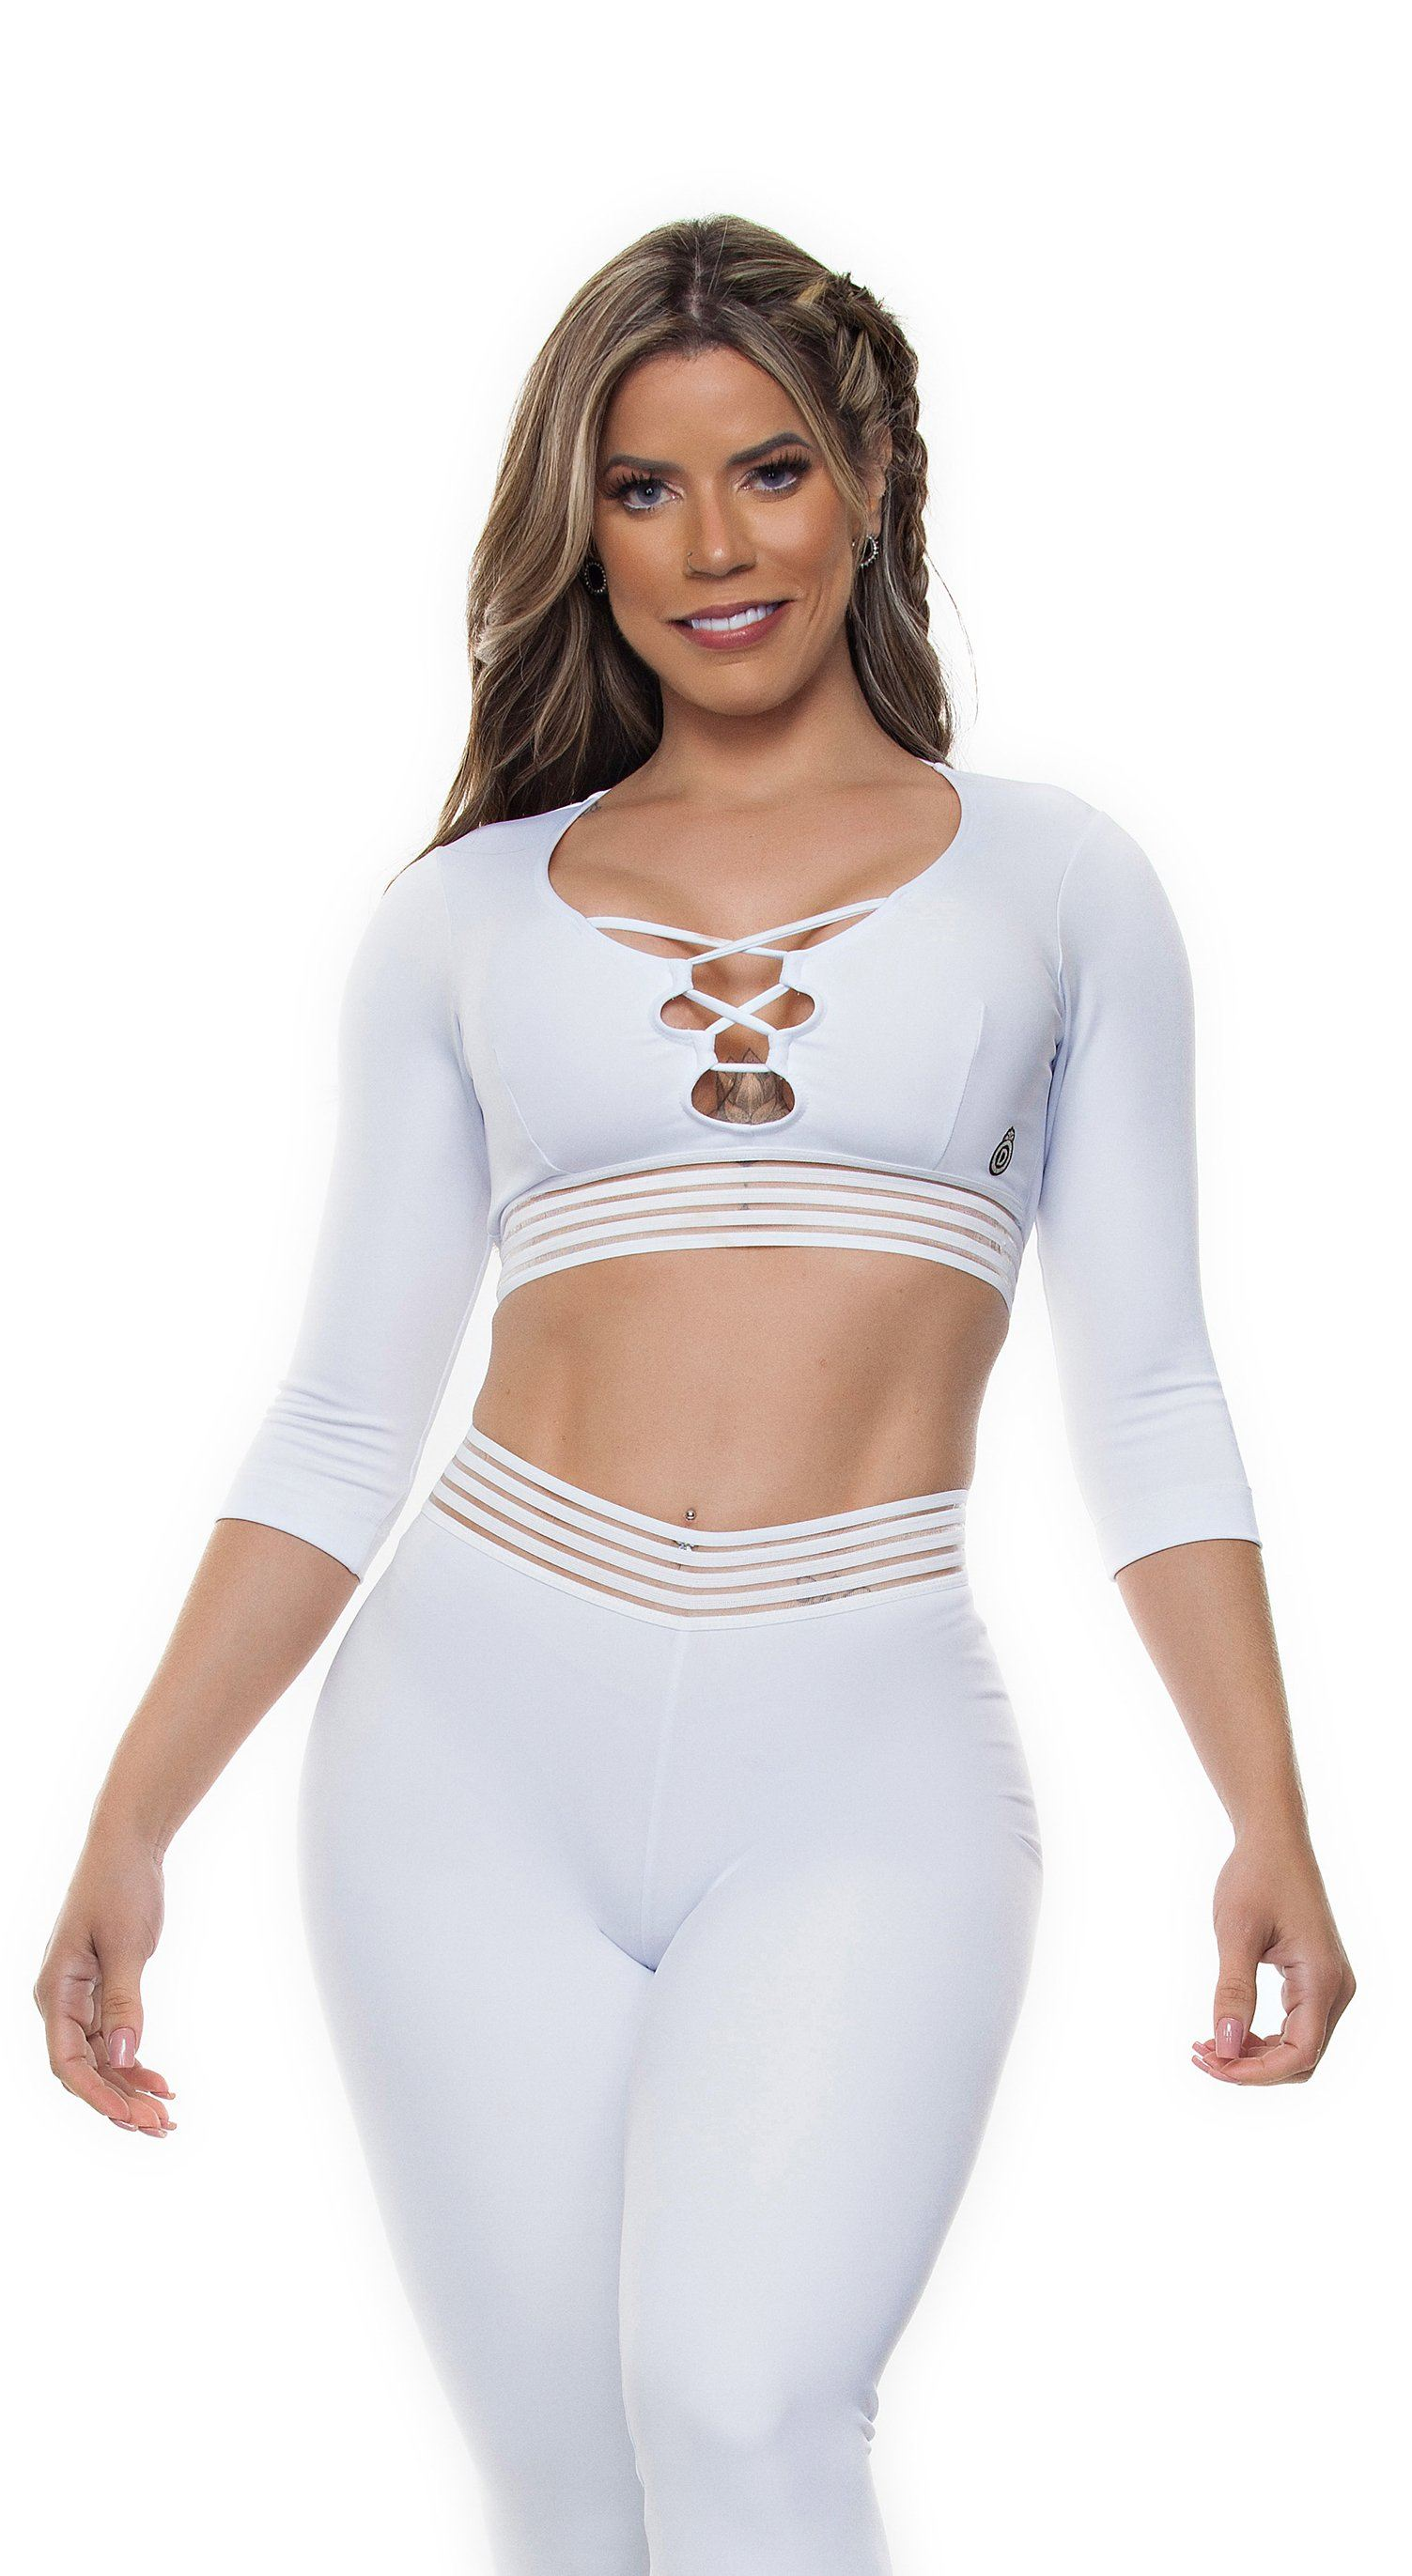 Brazilian Sports Top - Top Cropped Crisscross Fusion White